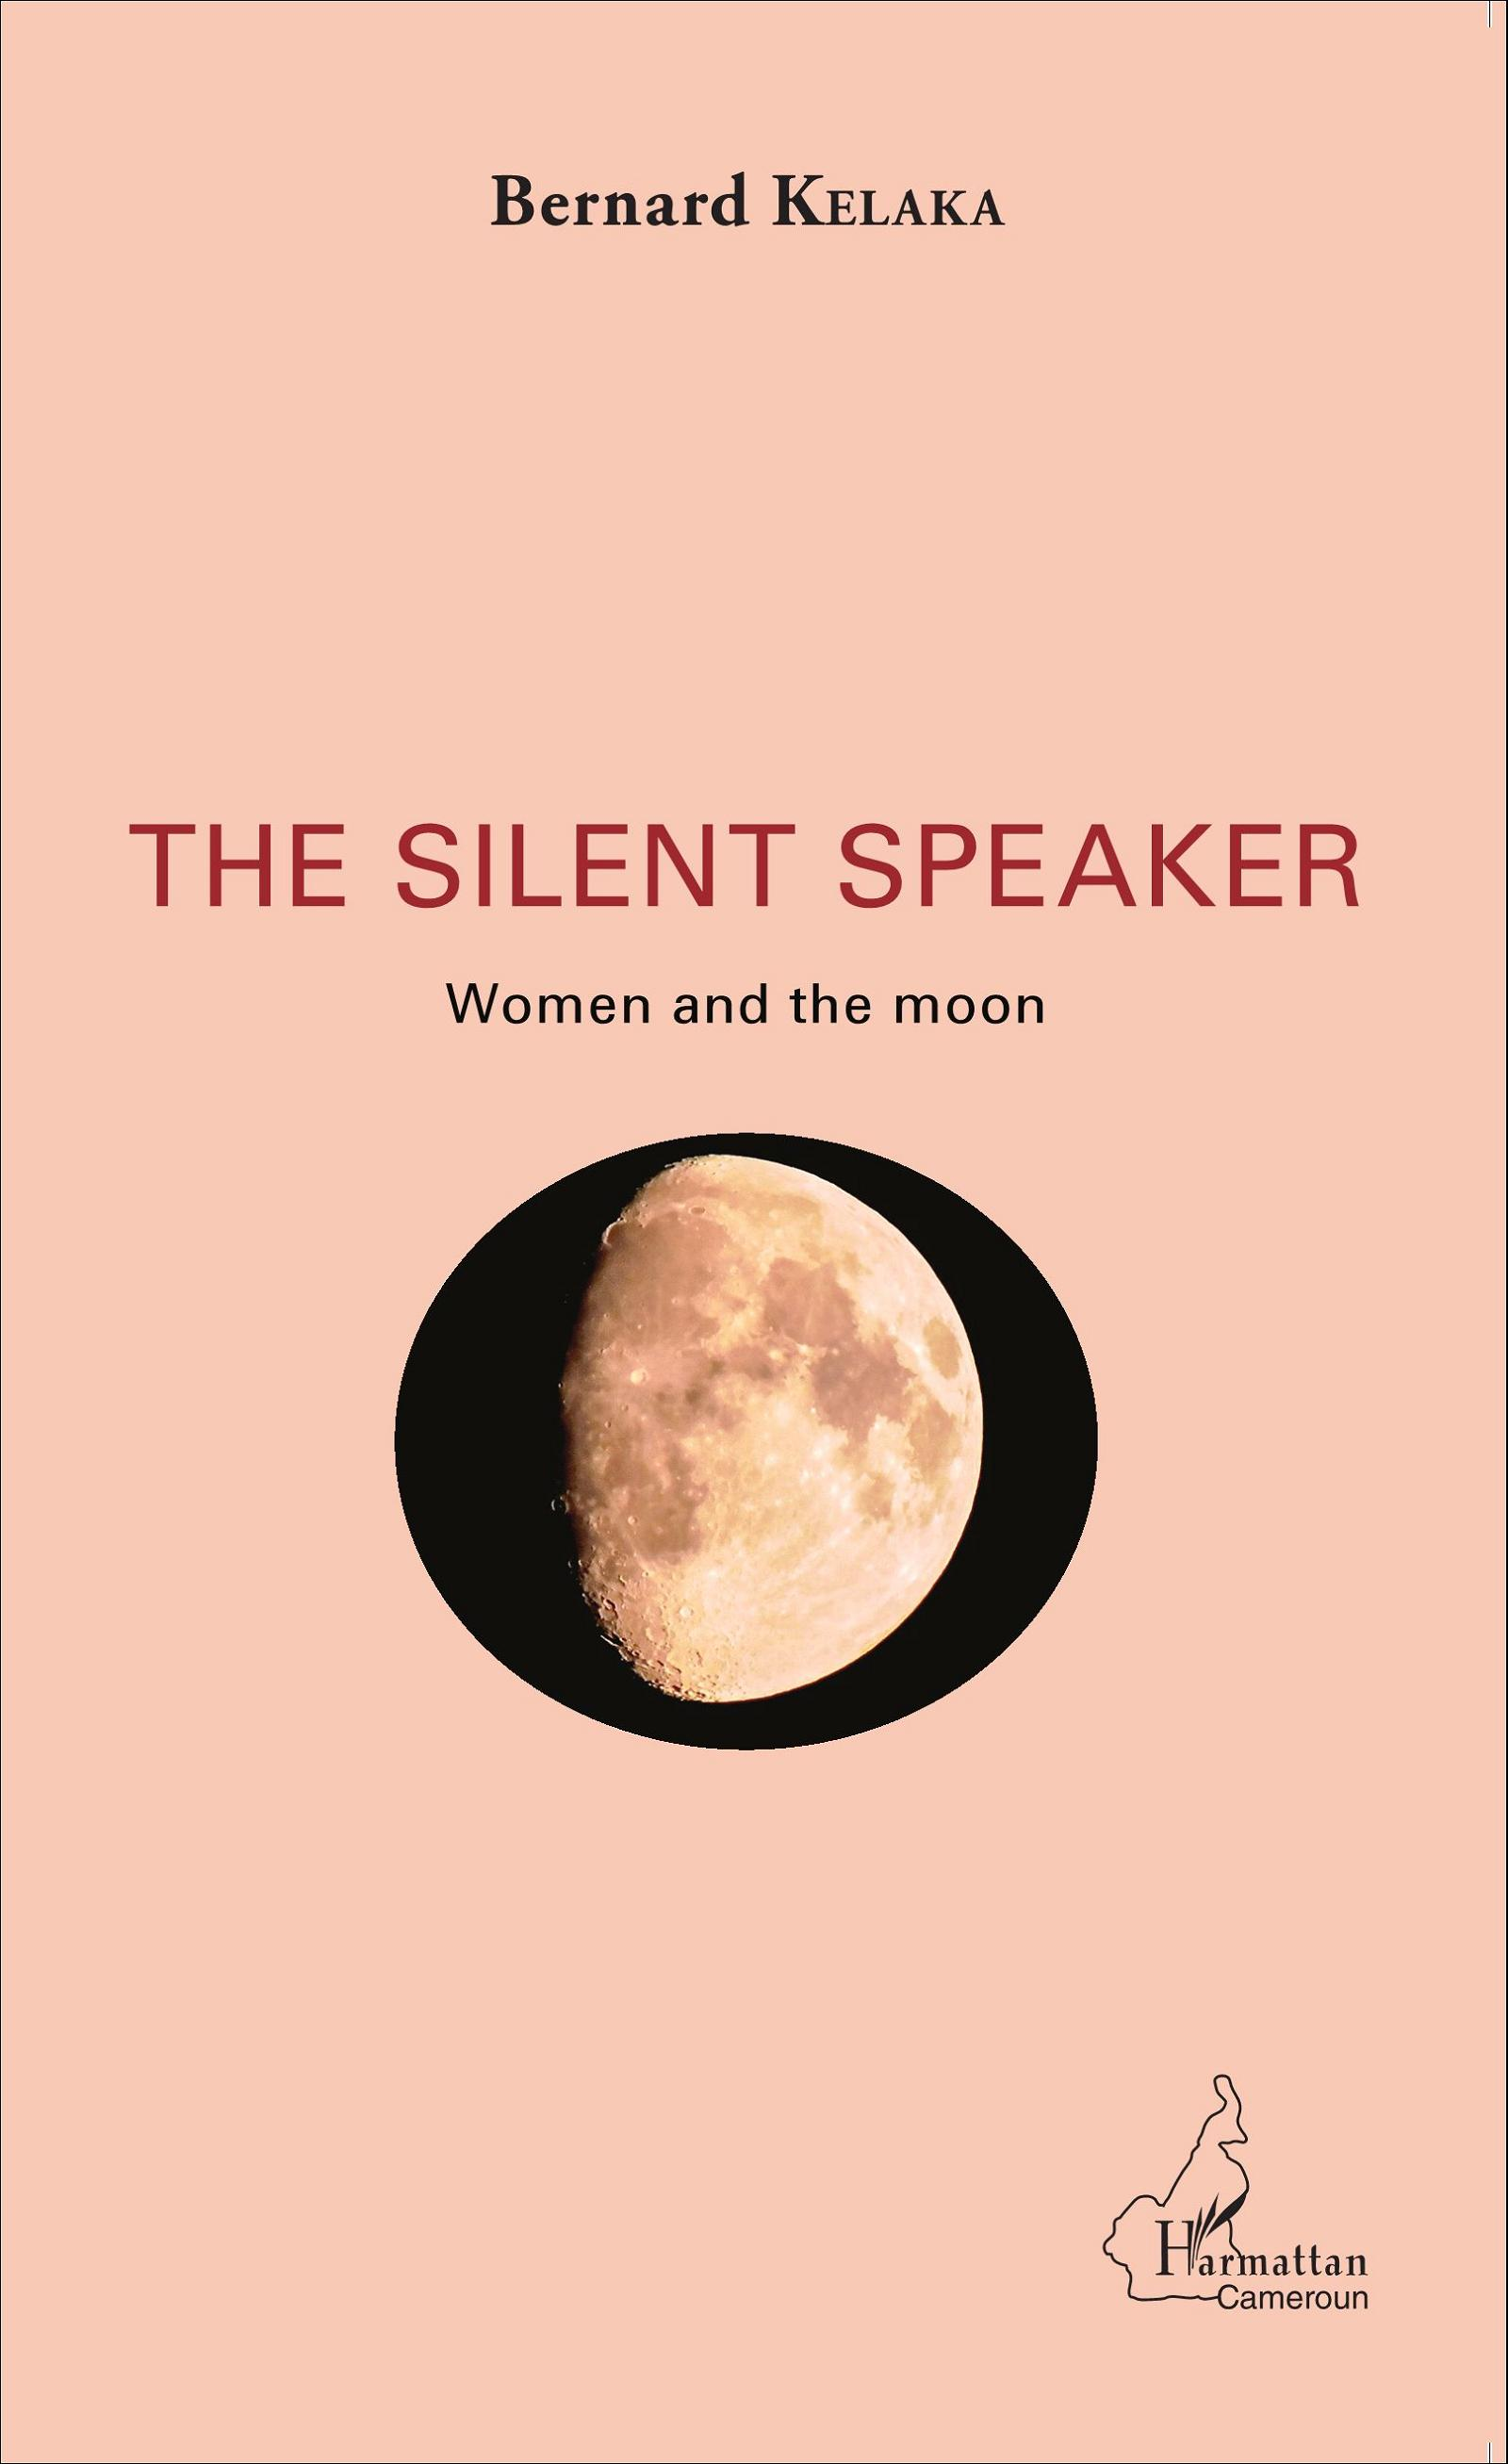 The silent speaker